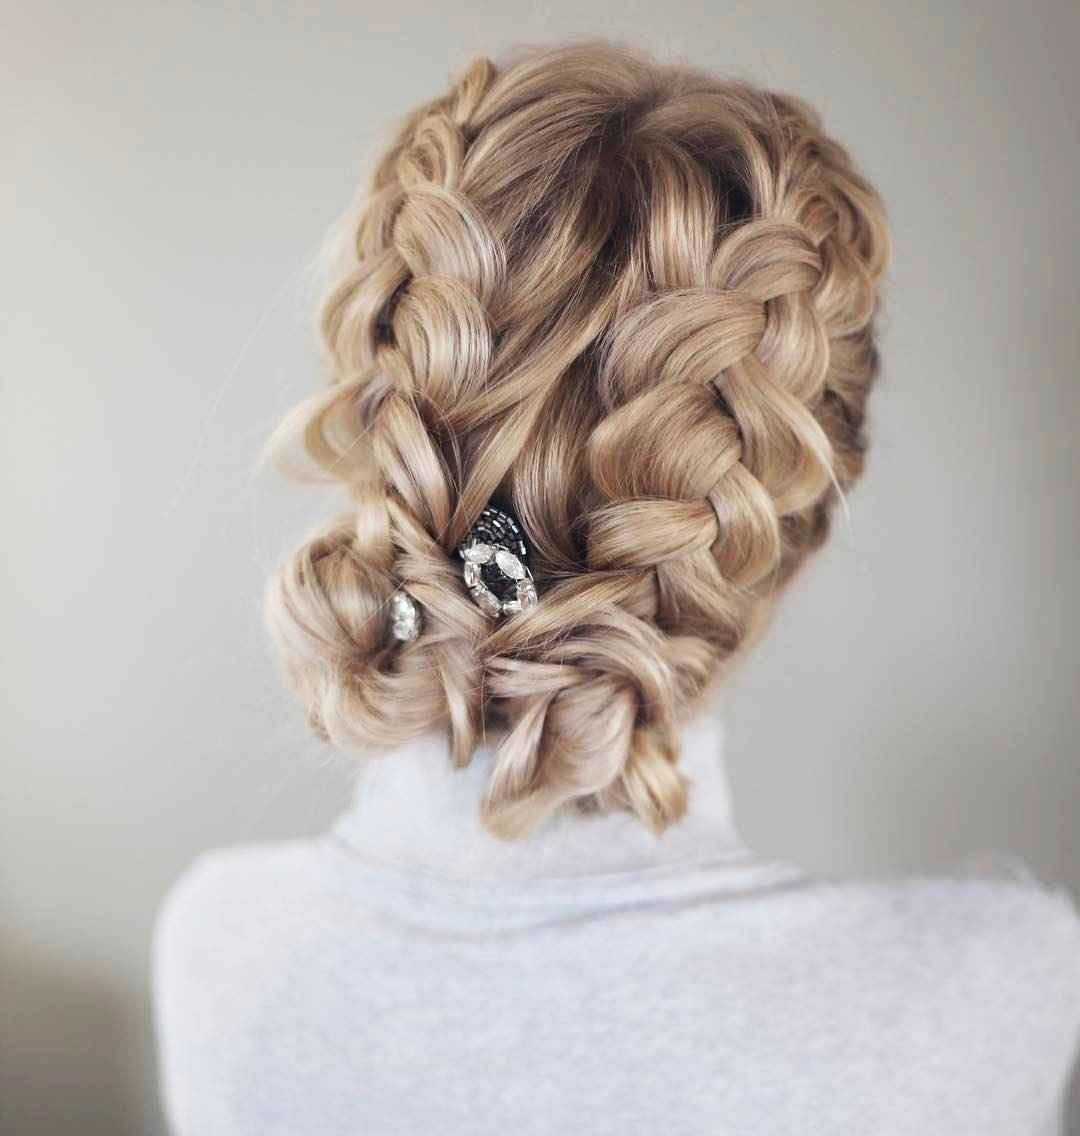 Hairstyles for prom for medium hair 2019-2020 photo 5